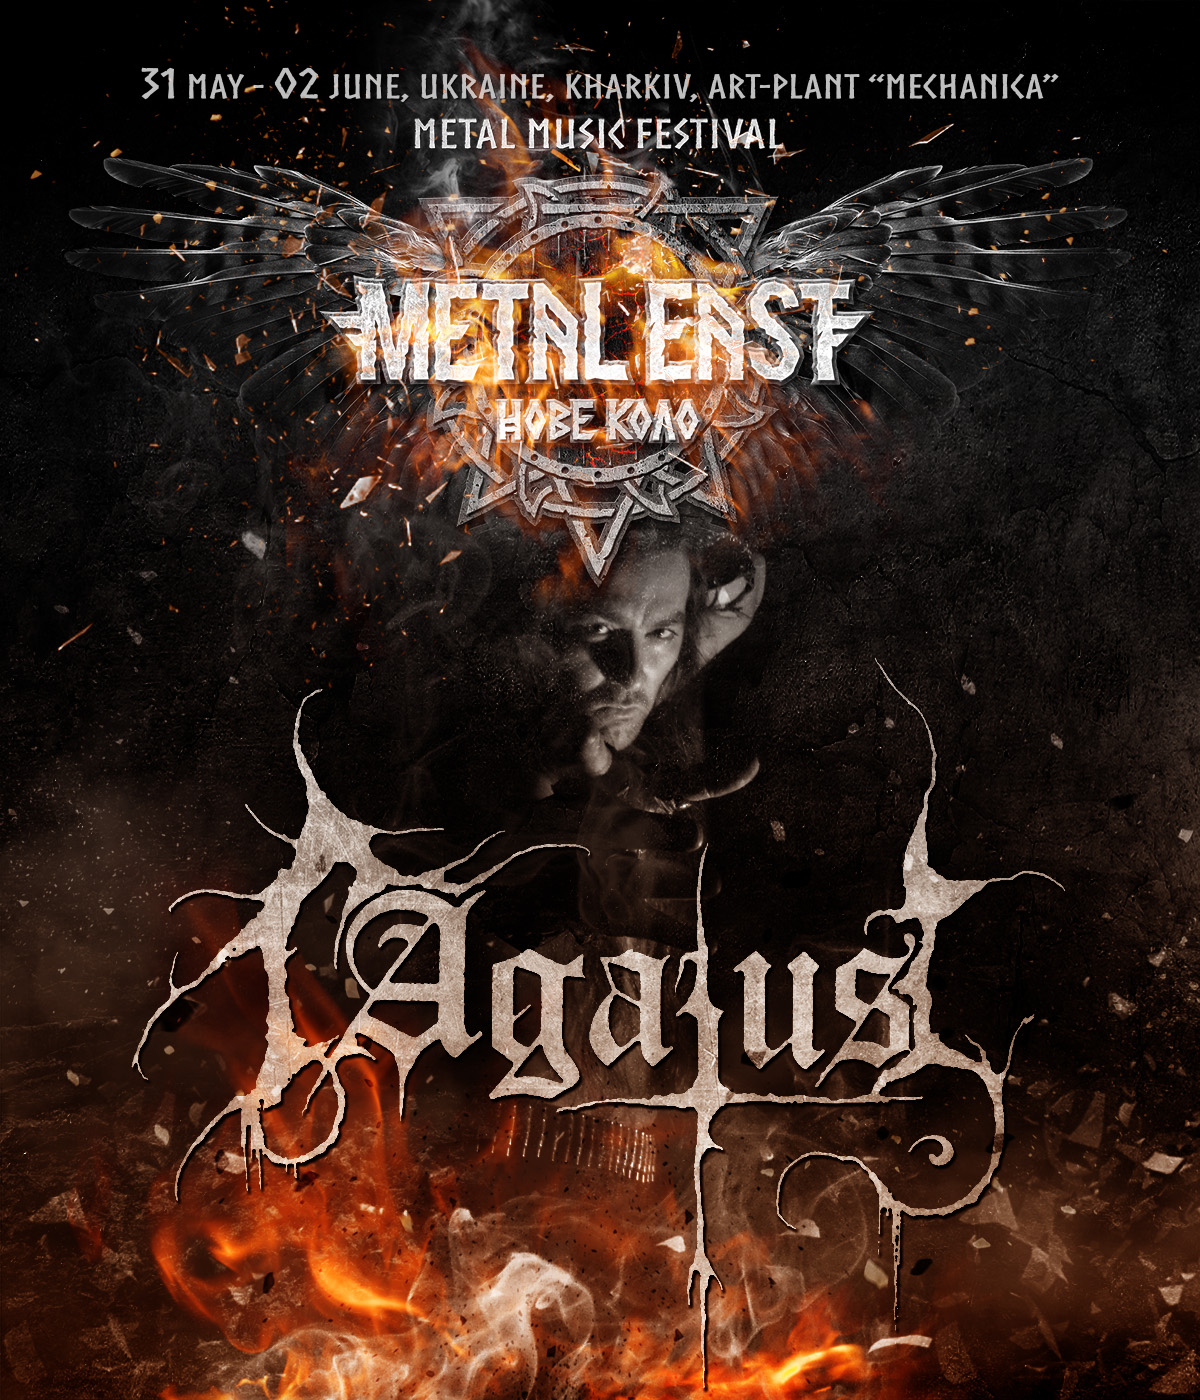 AGATUS at Metal East Nove Kolo fest from May 31st to June 2nd of 2019 in Kharkiv!